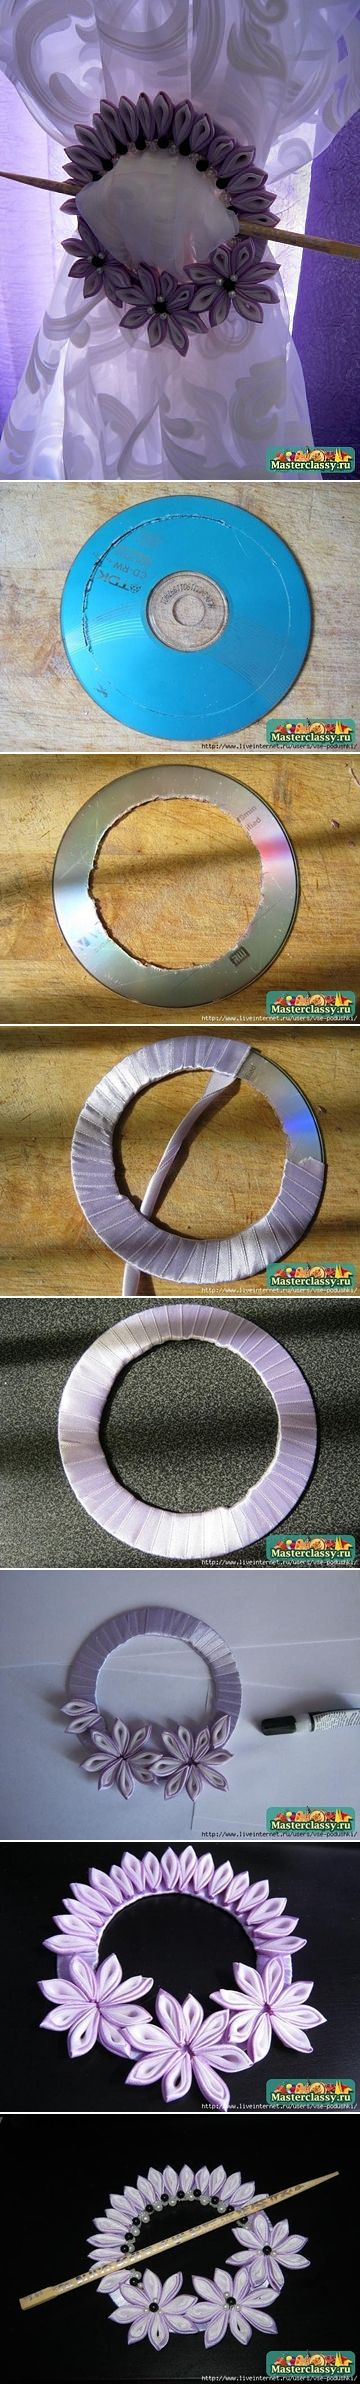 CD into curtain knot tutorial: